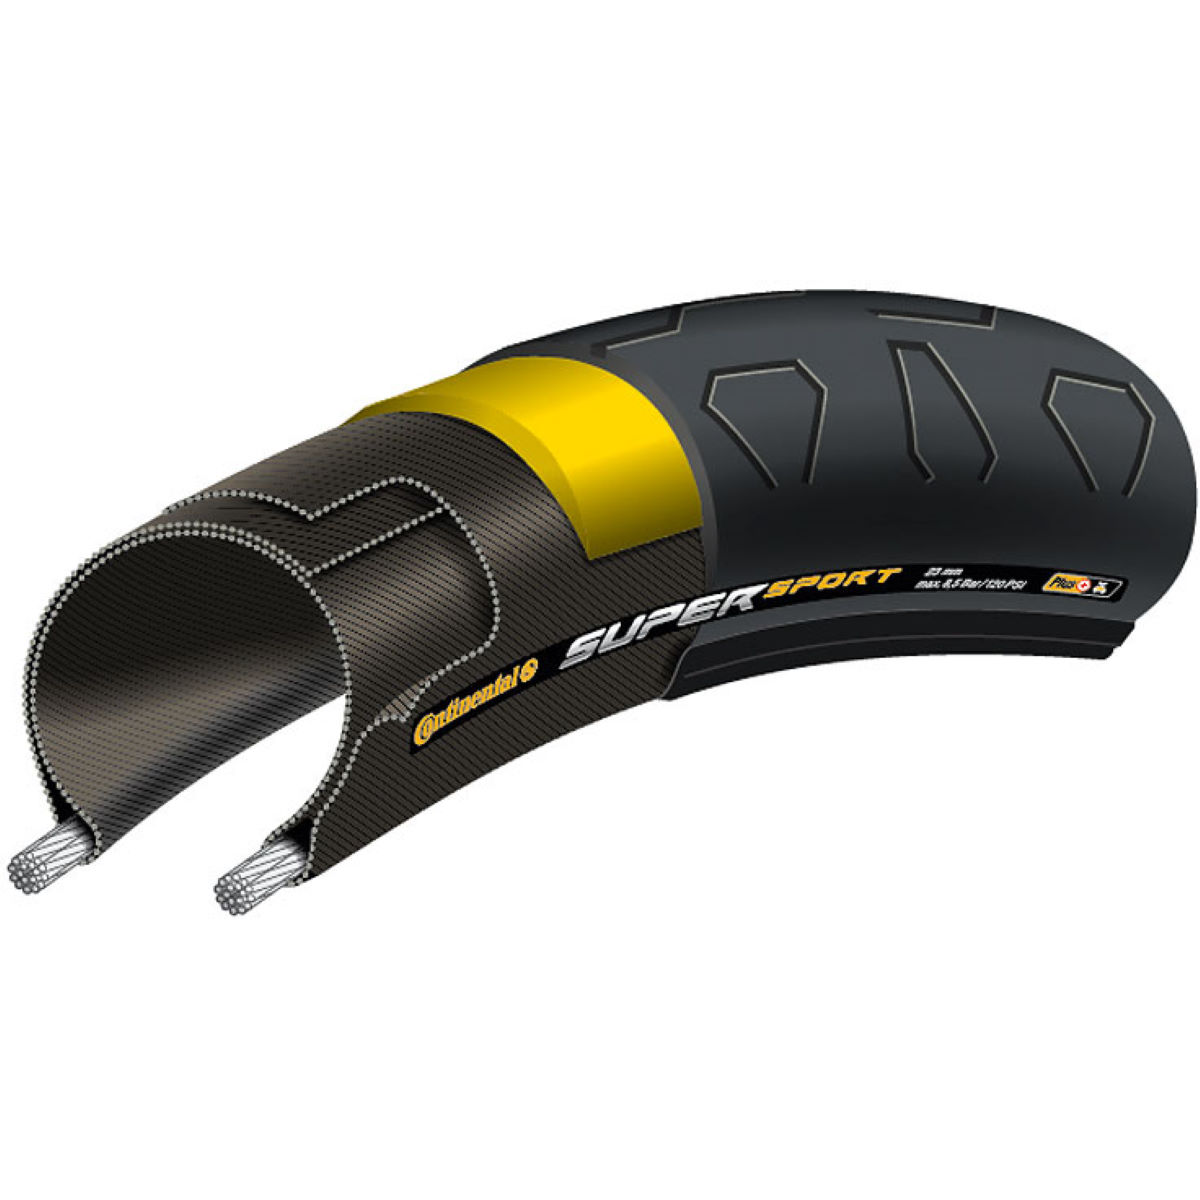 Cubierta de carretera Continental SuperSport Plus - Cubiertas para carretera